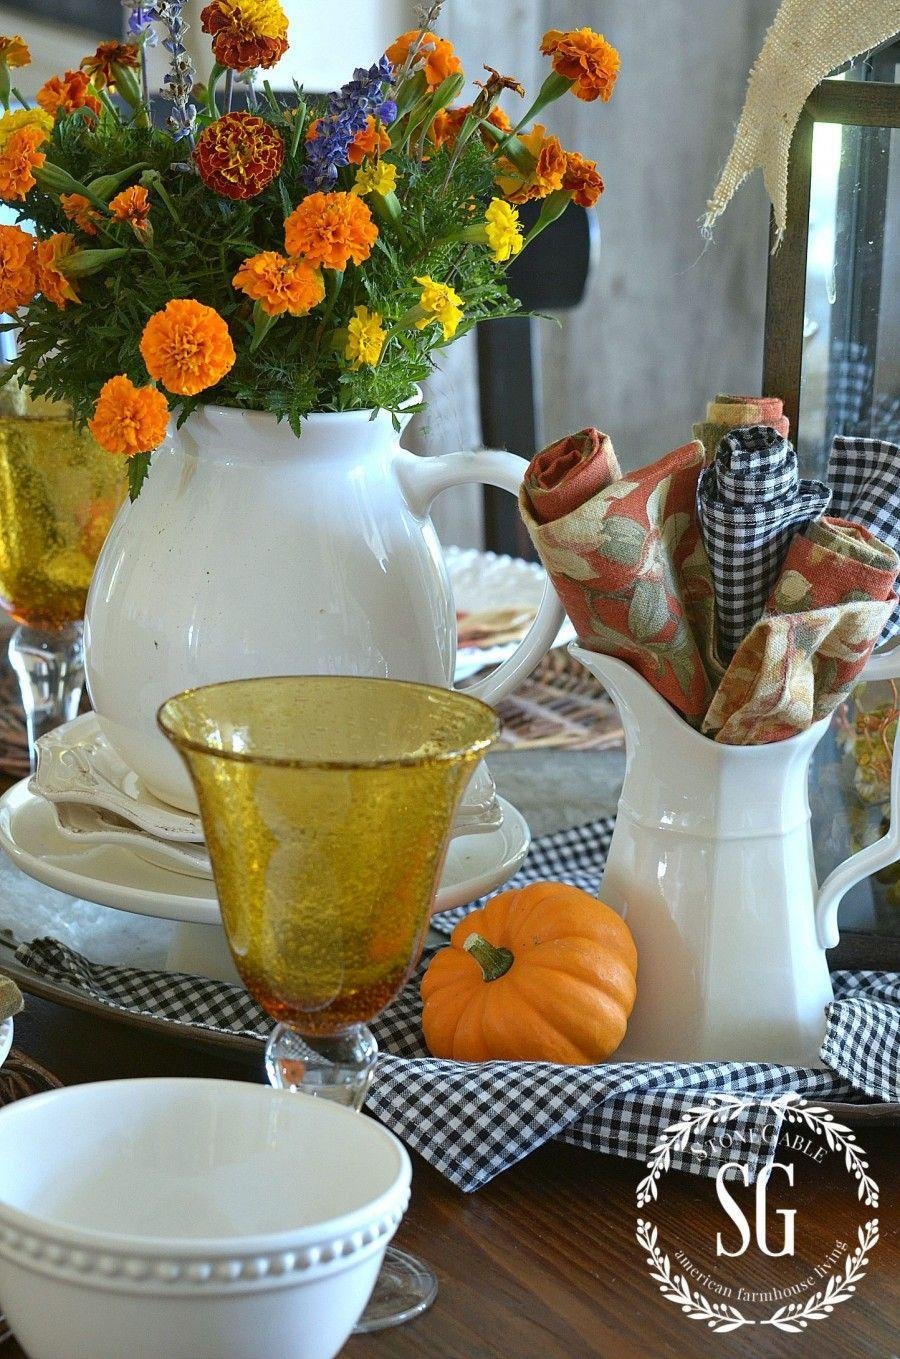 "<p>Here's proof that sometimes practical is best: Roll up cloth napkins and tuck them into a pitcher for an inevitable spill. To brighten up the spread, stick cheery mums in a matching jug.</p><p><em><a href=""http://www.stonegableblog.com/fall-home-tour/"" rel=""nofollow noopener"" target=""_blank"" data-ylk=""slk:Get the tutorial at Stone Gable »"" class=""link rapid-noclick-resp"">Get the tutorial at Stone Gable »</a></em></p>"